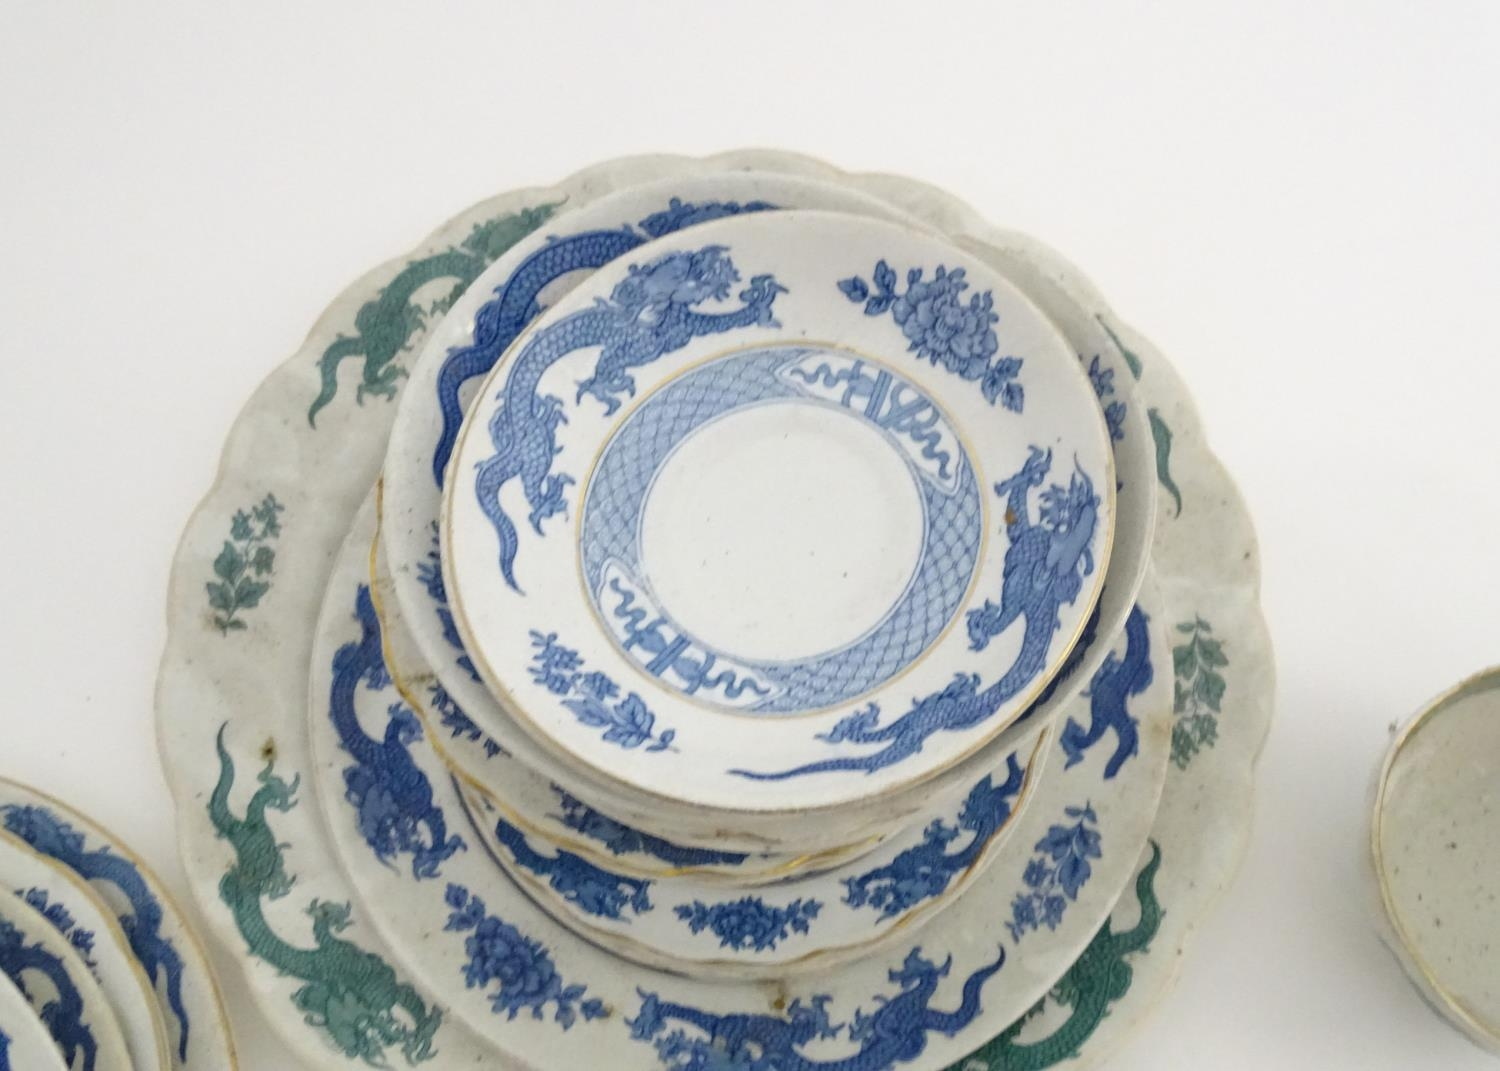 A large quantity of assorted Booths china to include teapots, plates, tureens, jugs, serving dishes, - Image 13 of 17